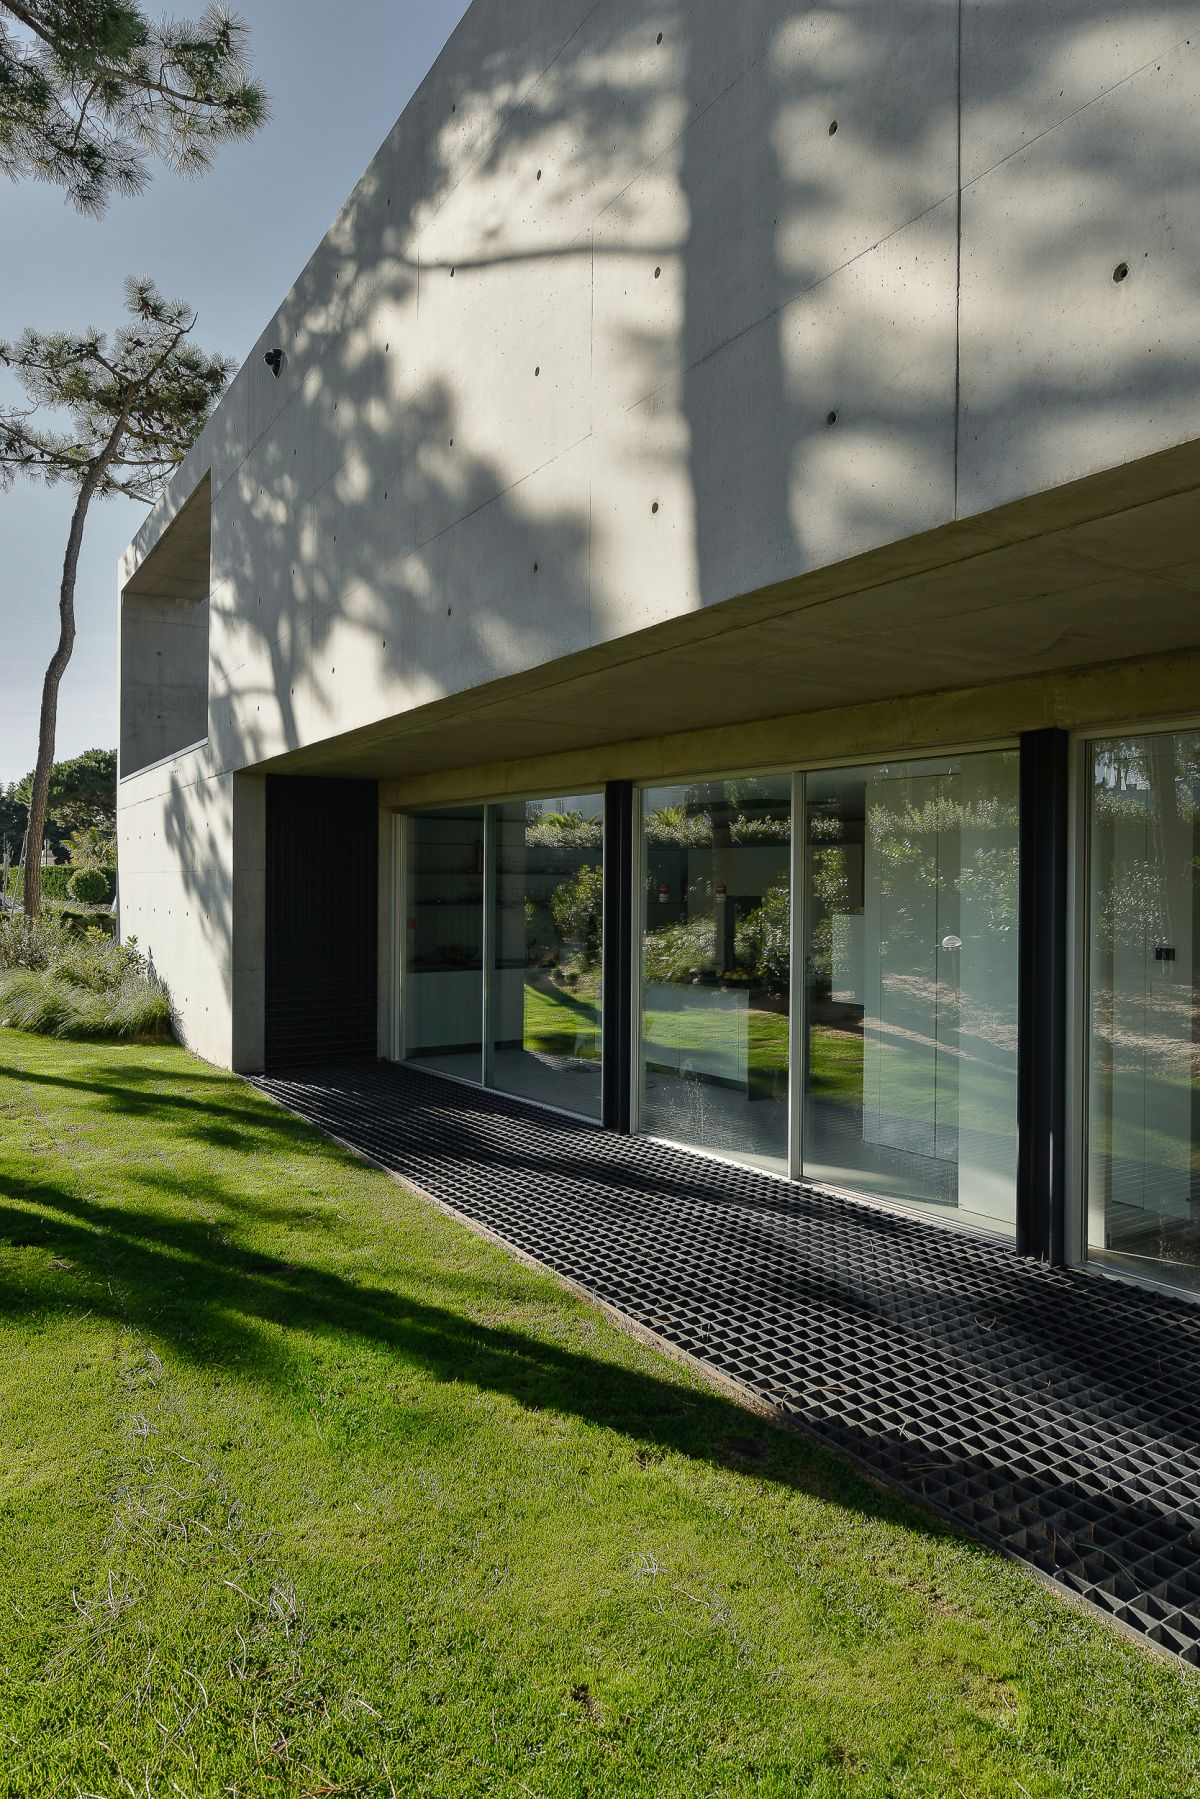 Minimalist, functional surfaces like this work with the style of the structure.